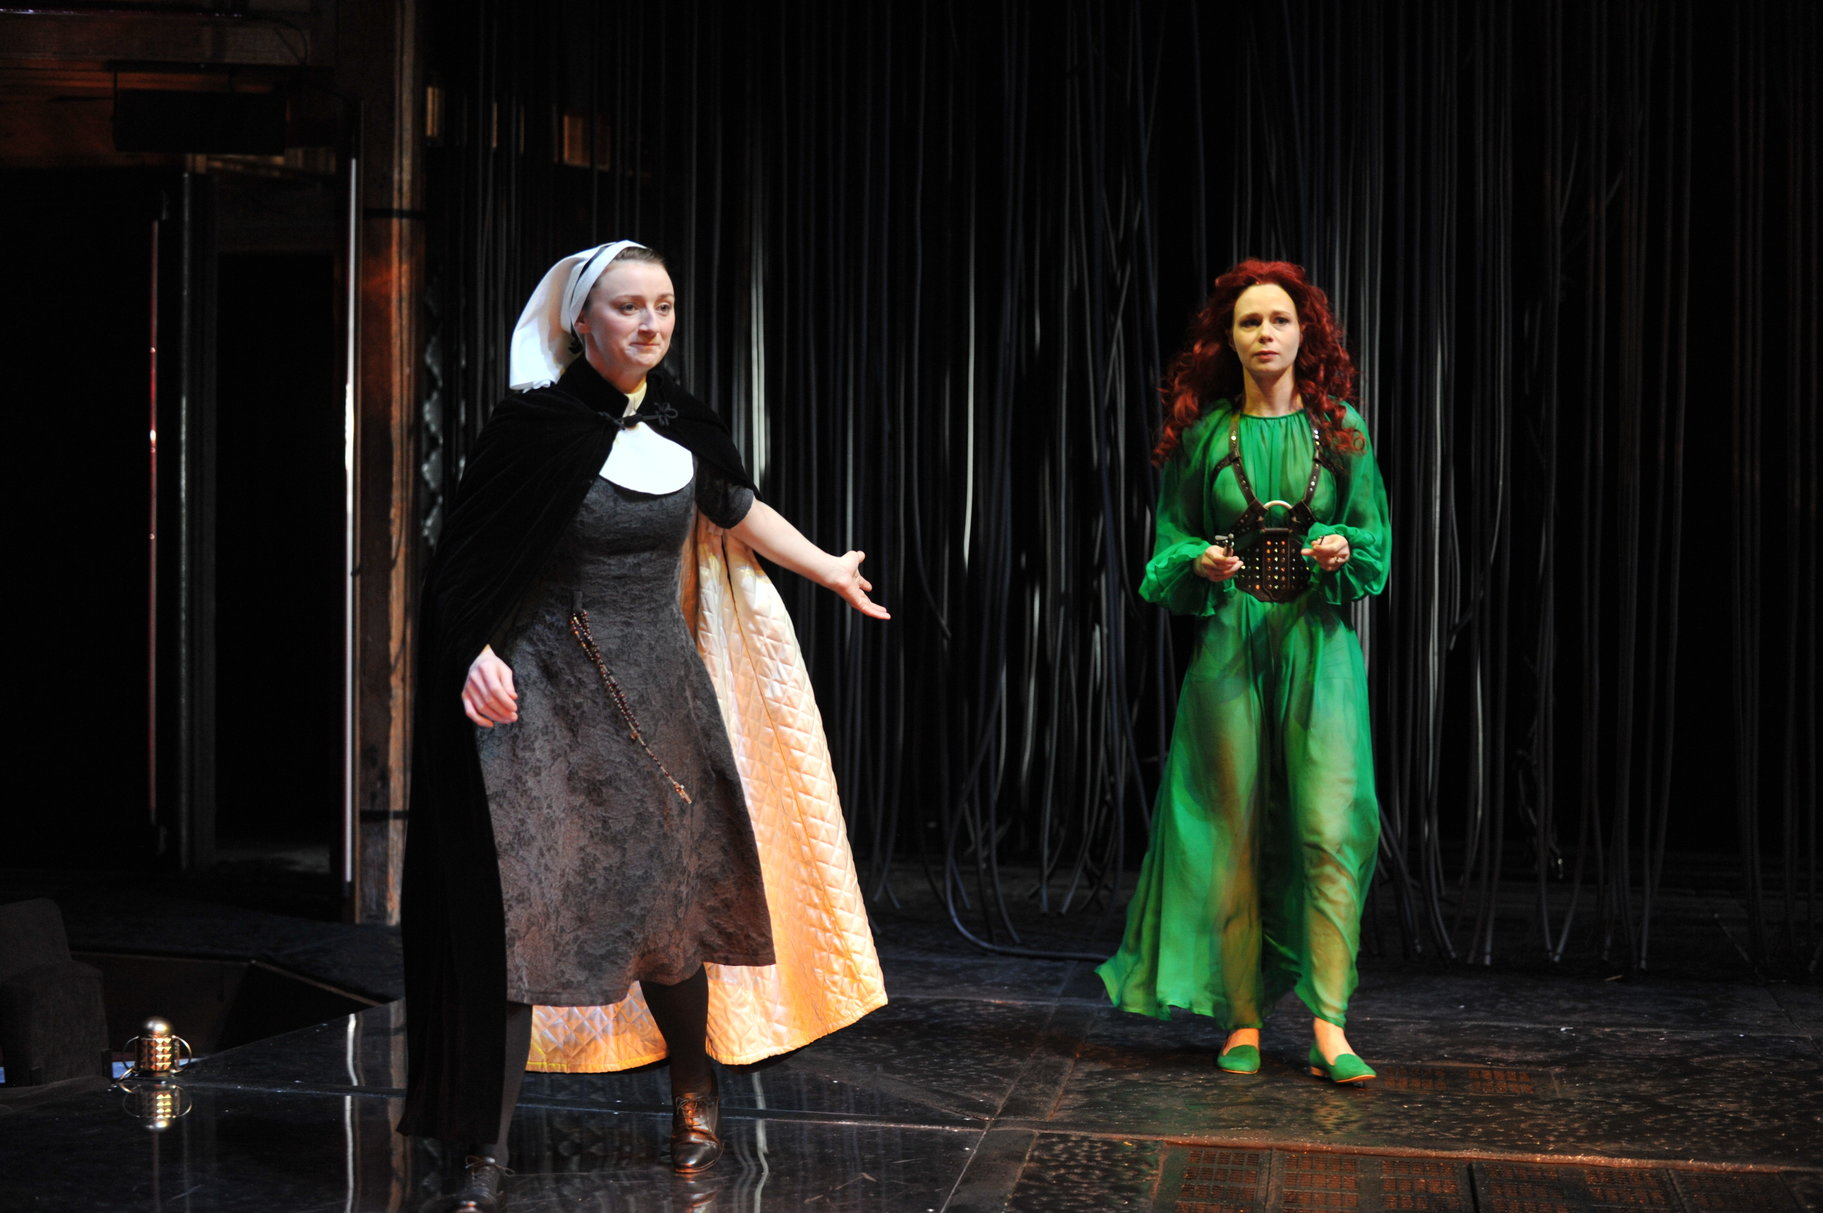 A nun gestures towards a woman in a sheer green dress.